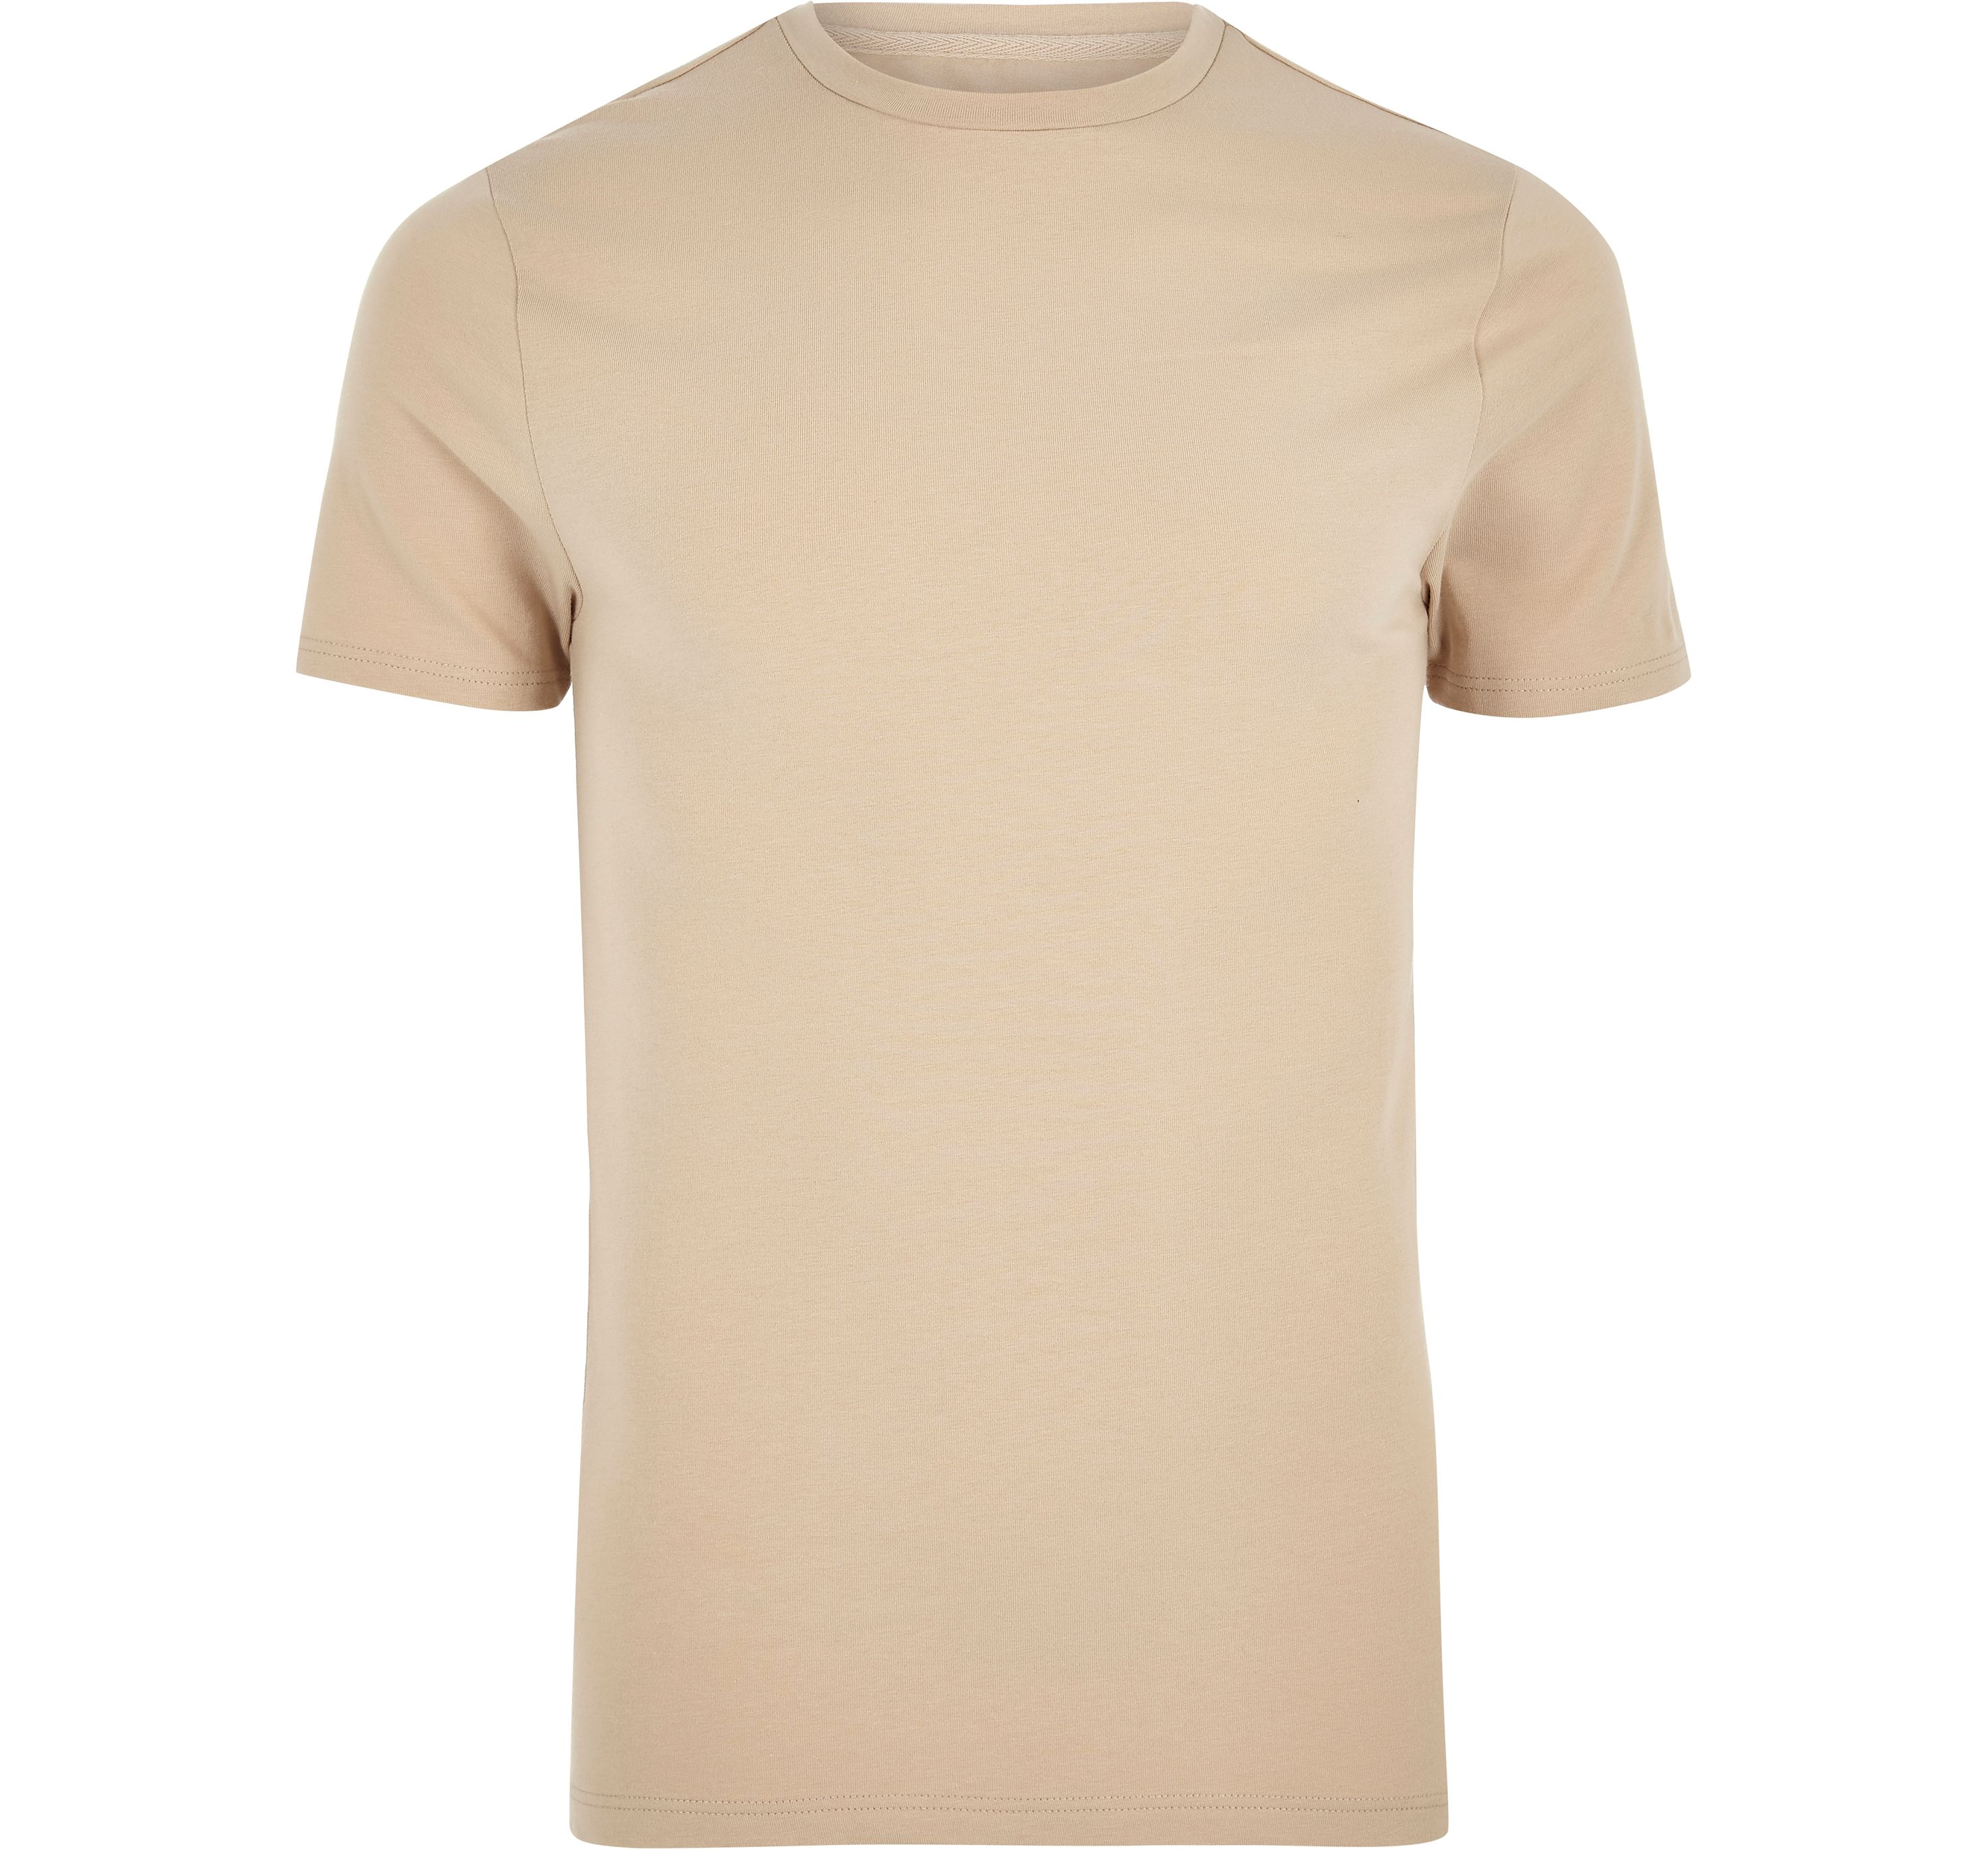 River Island Mens Light Brown muscle fit crew neck T-shirt